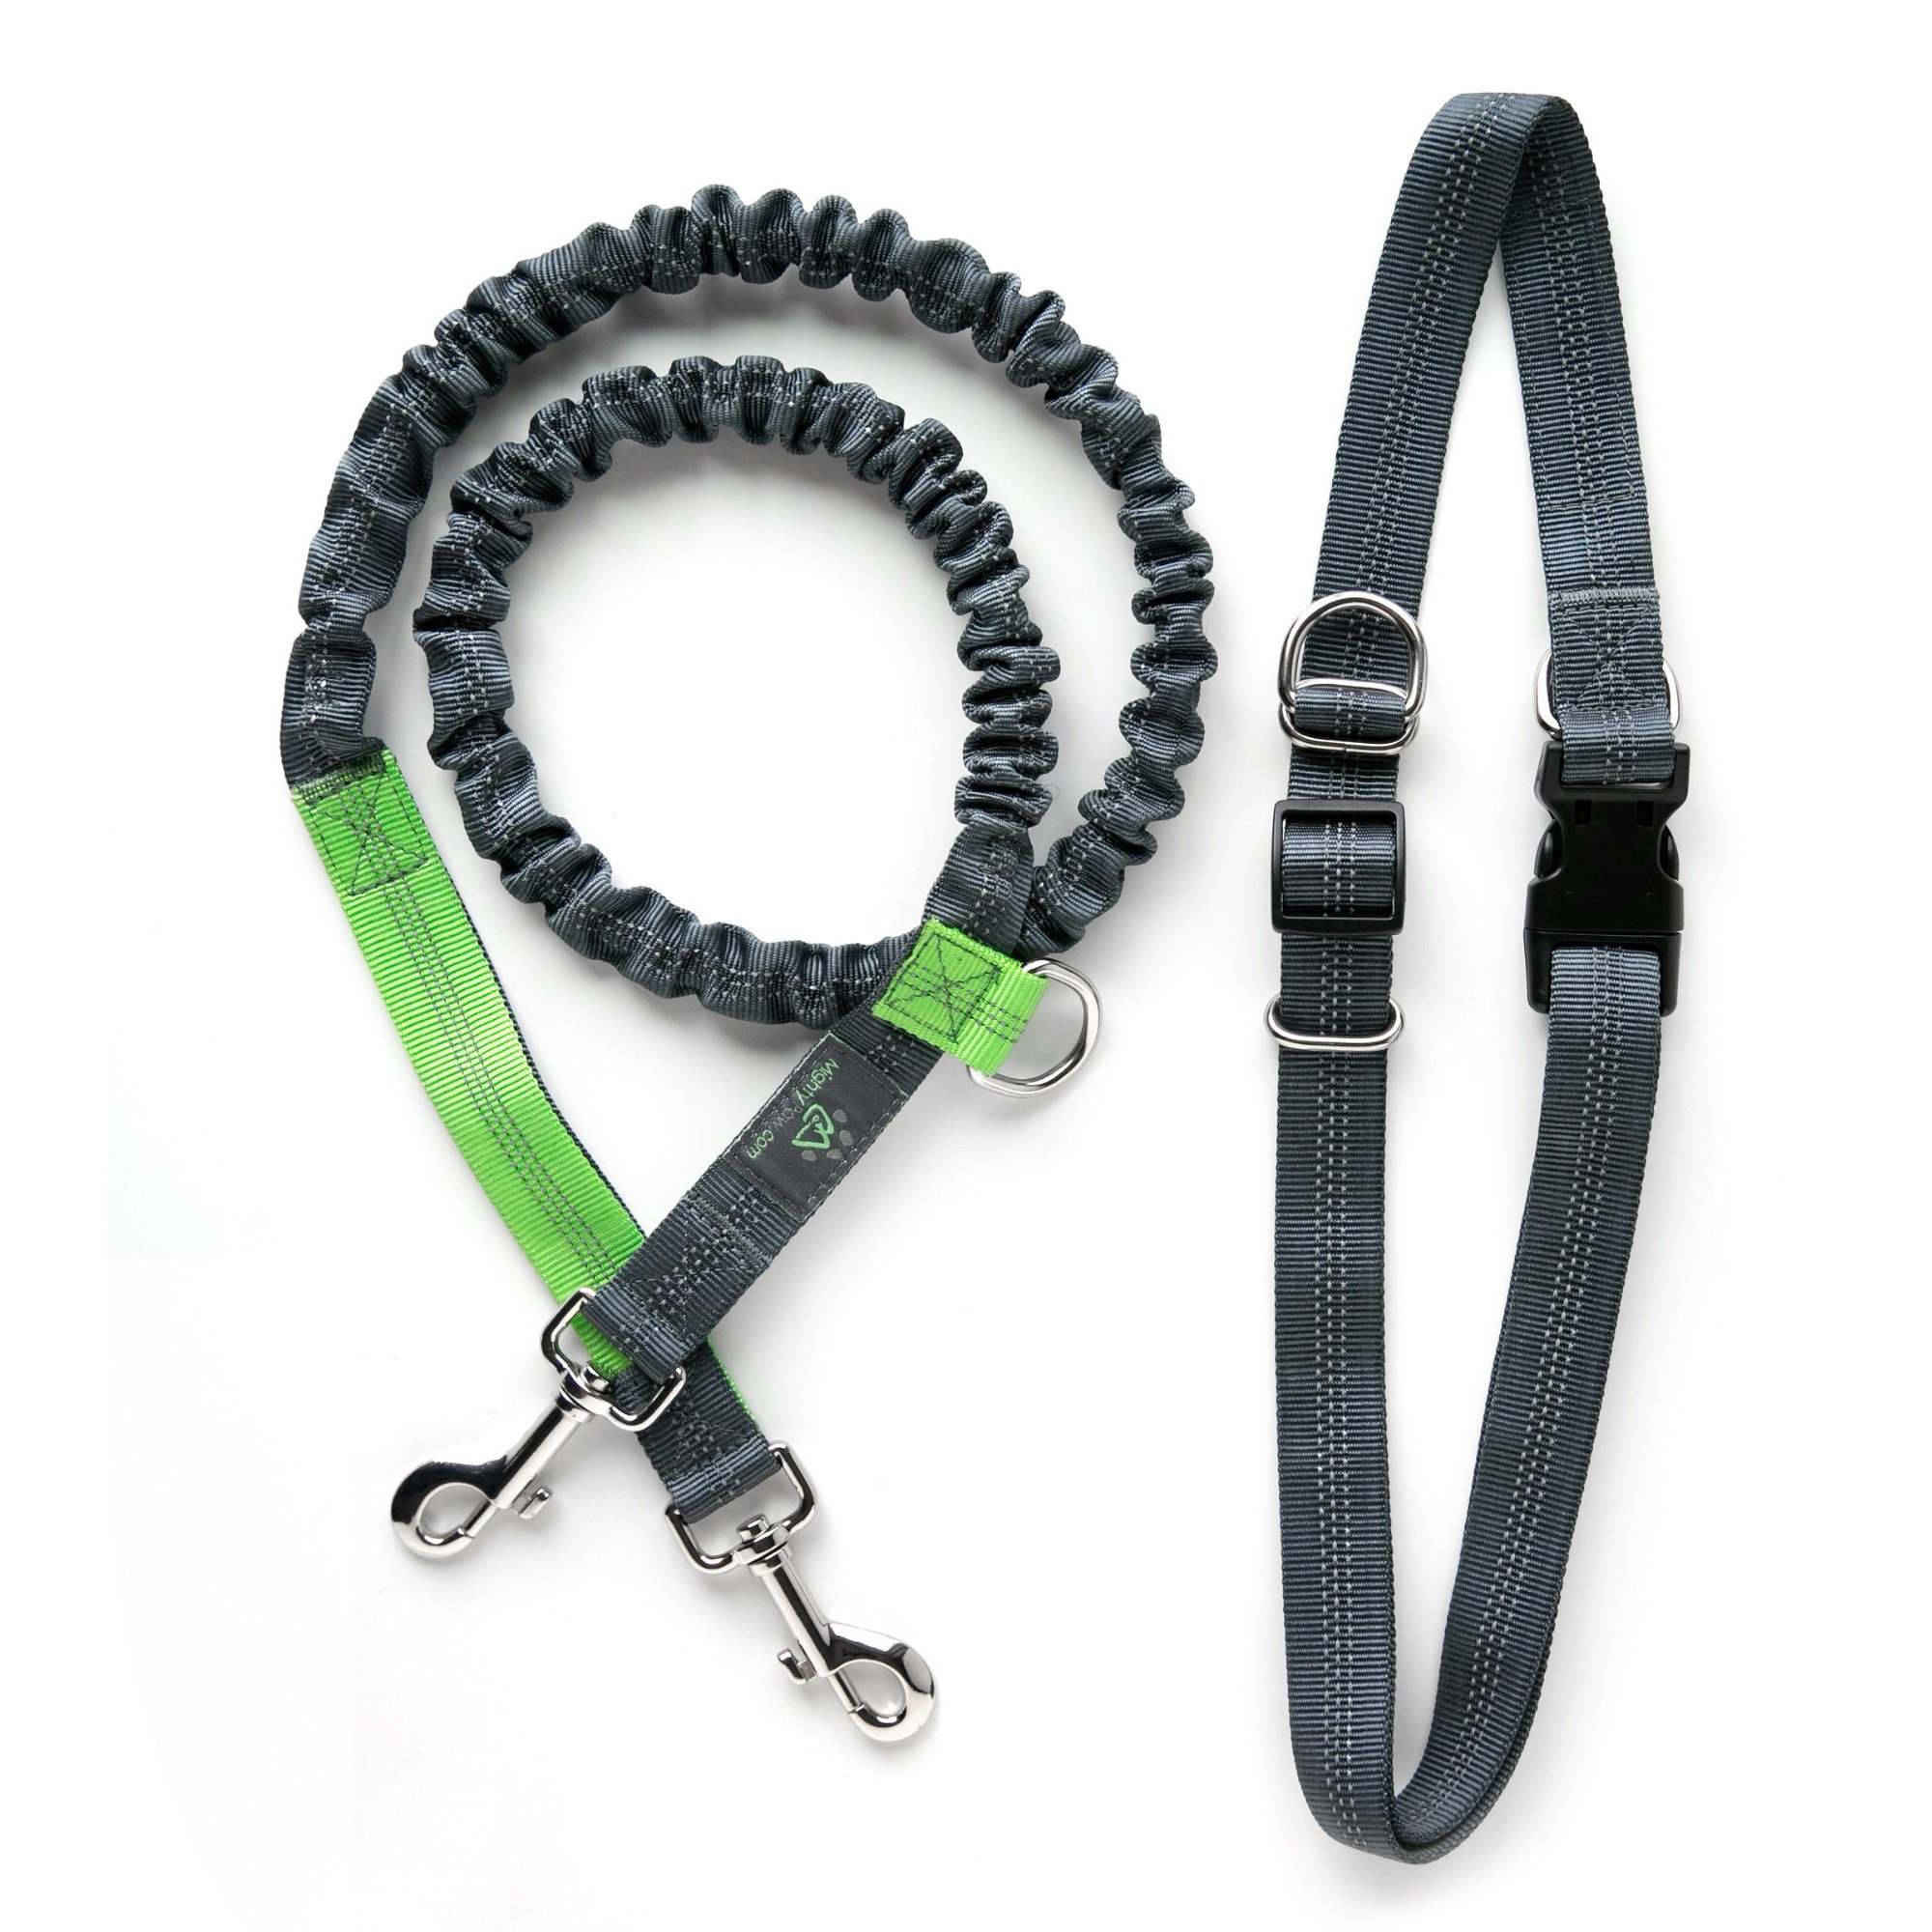 Mighty Paw Hands Free Dog Leash with Extra Length, Premium Running Dog Leash, Lightweight Reflective Bungee Dog Leash (Grey/Lime - 48 Inch Bungee)